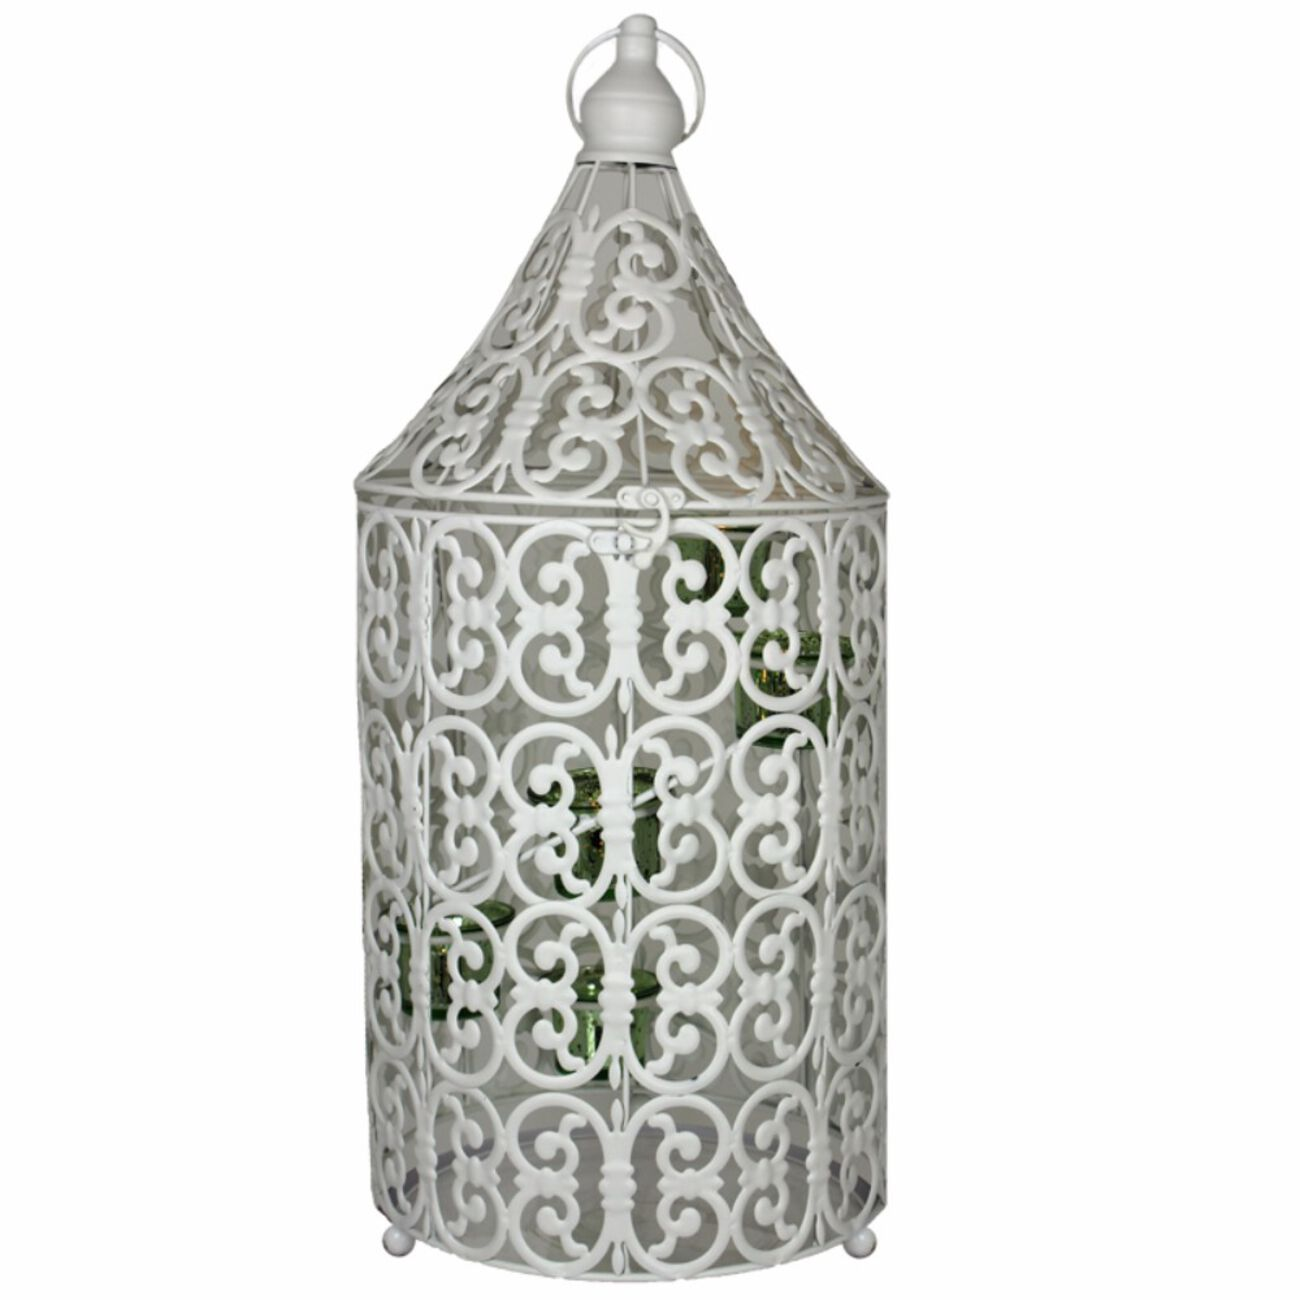 Metal Bird Caged Lantern,White/Blue